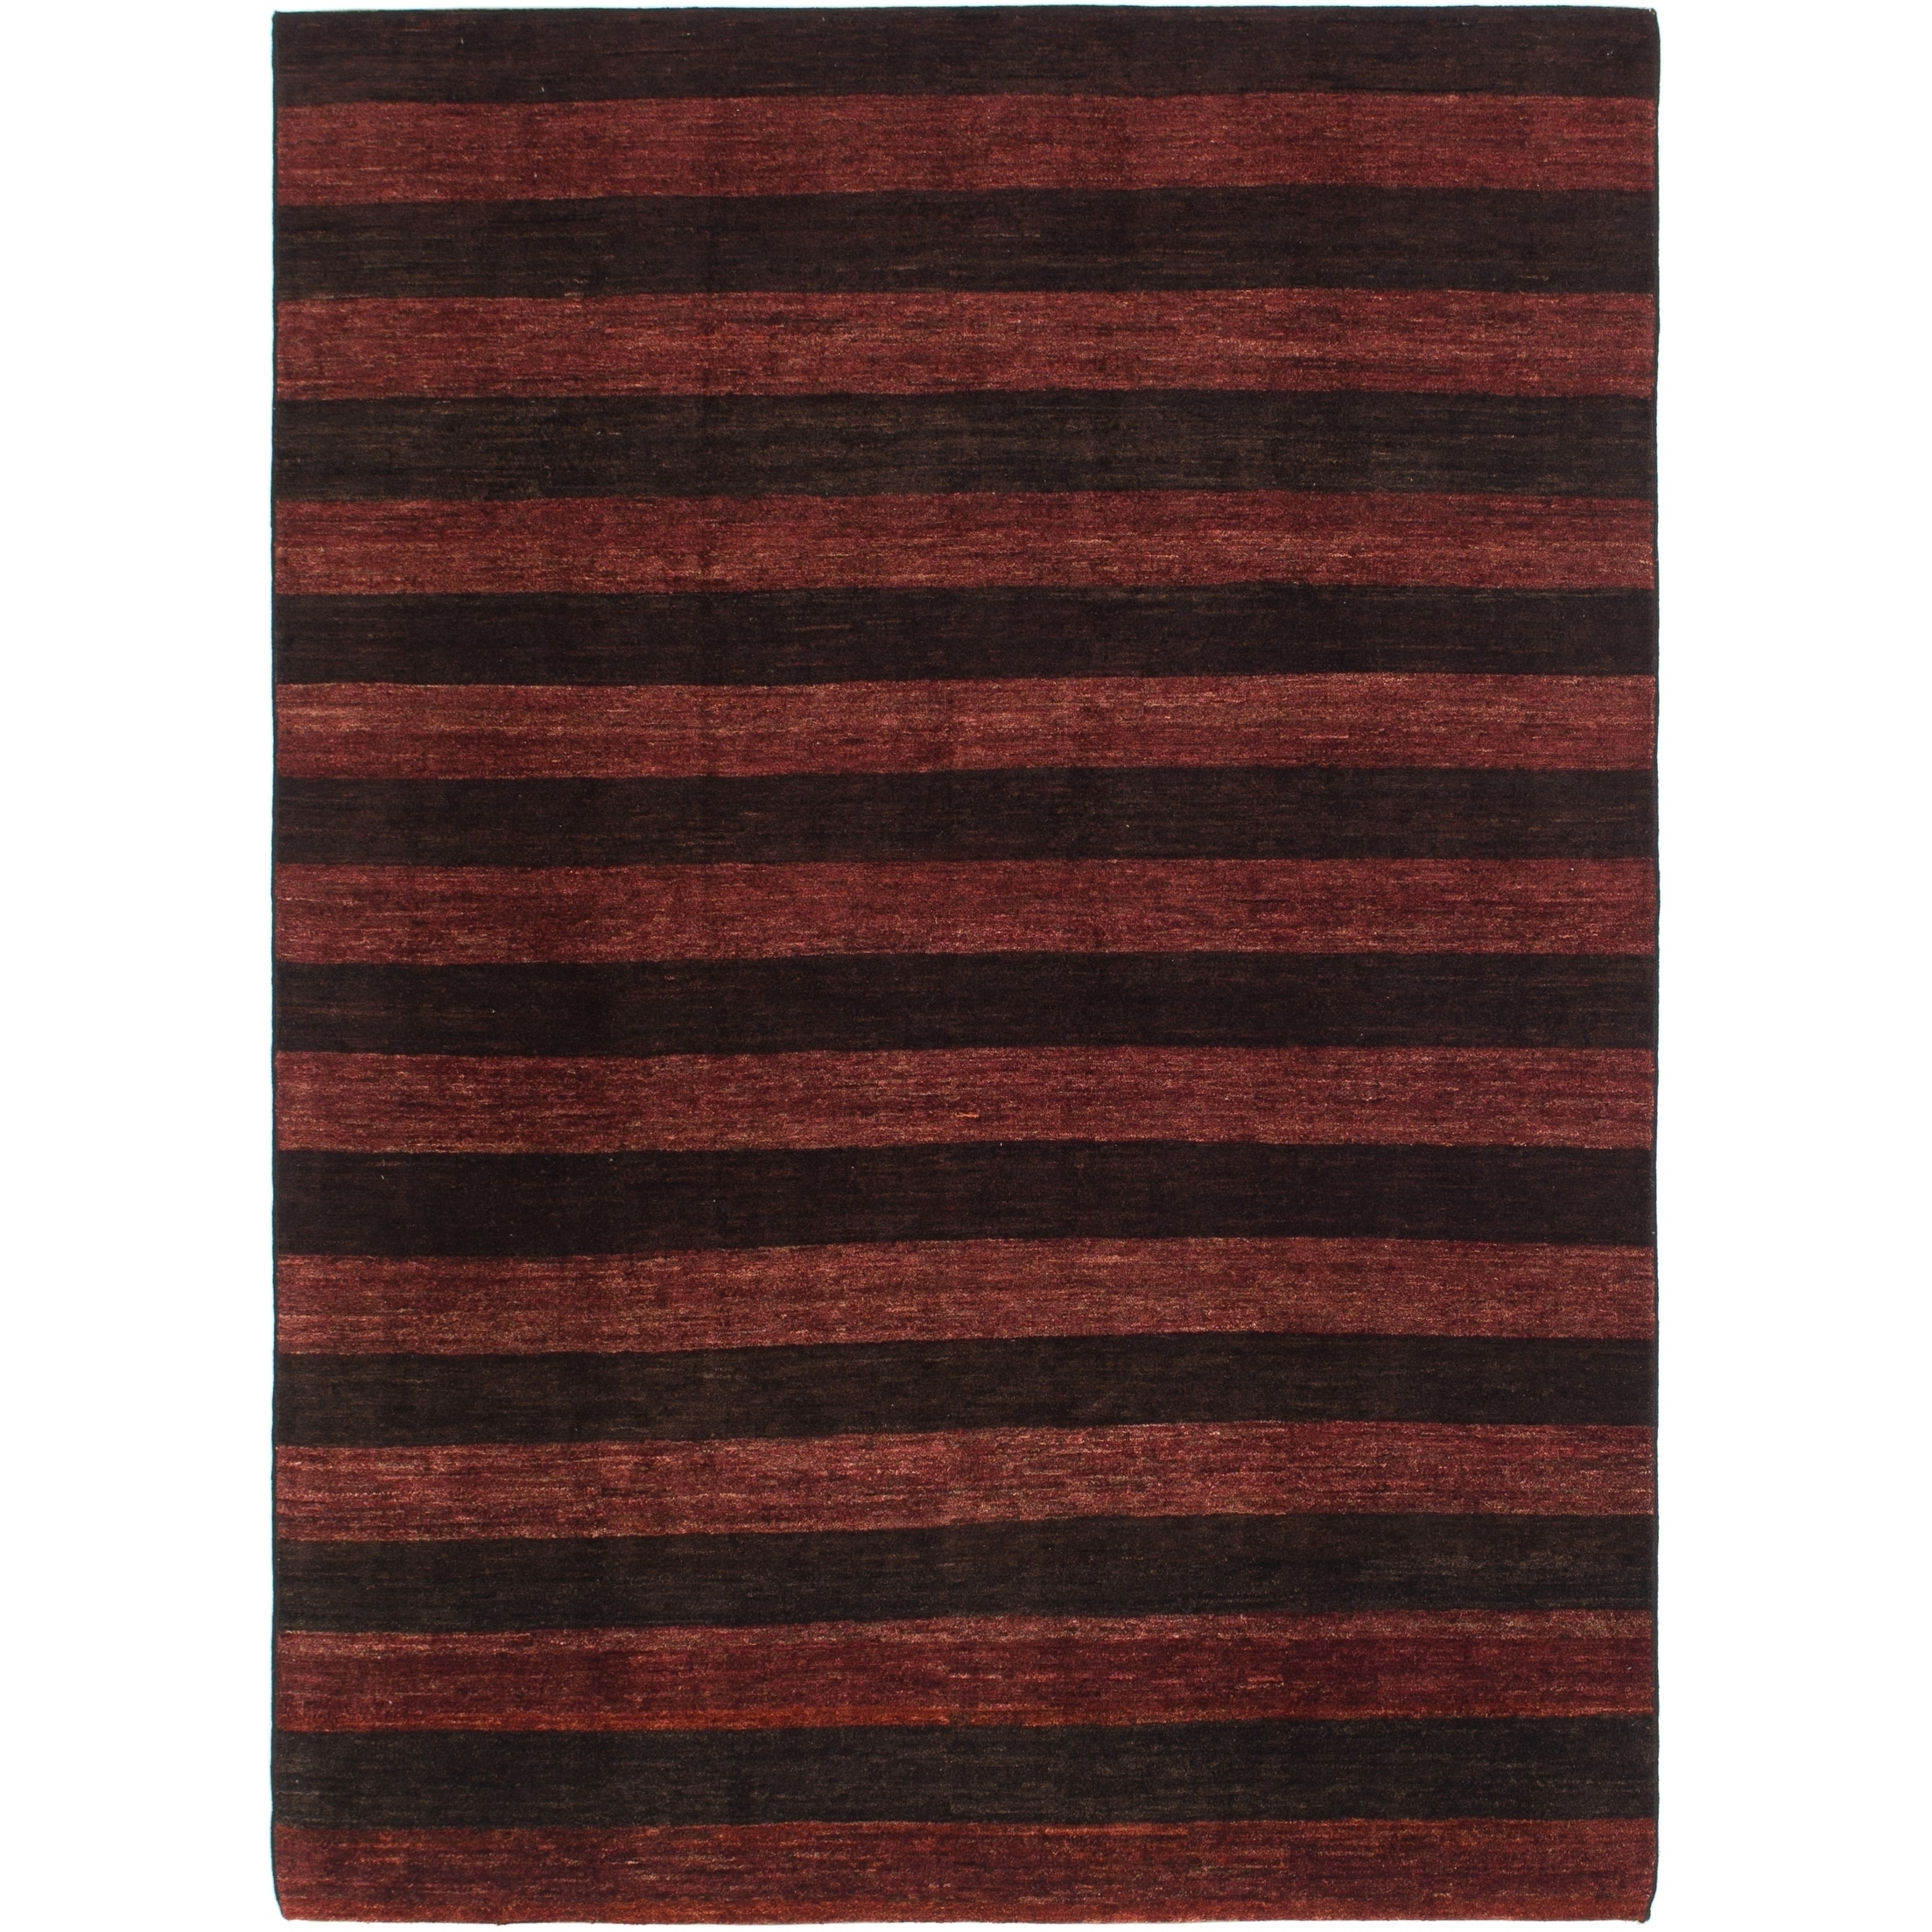 Hand Knotted Kashkuli Gabbeh Wool Area Rug - 6 6 x 8 10 (Burgundy - 6 6 x 8 10)